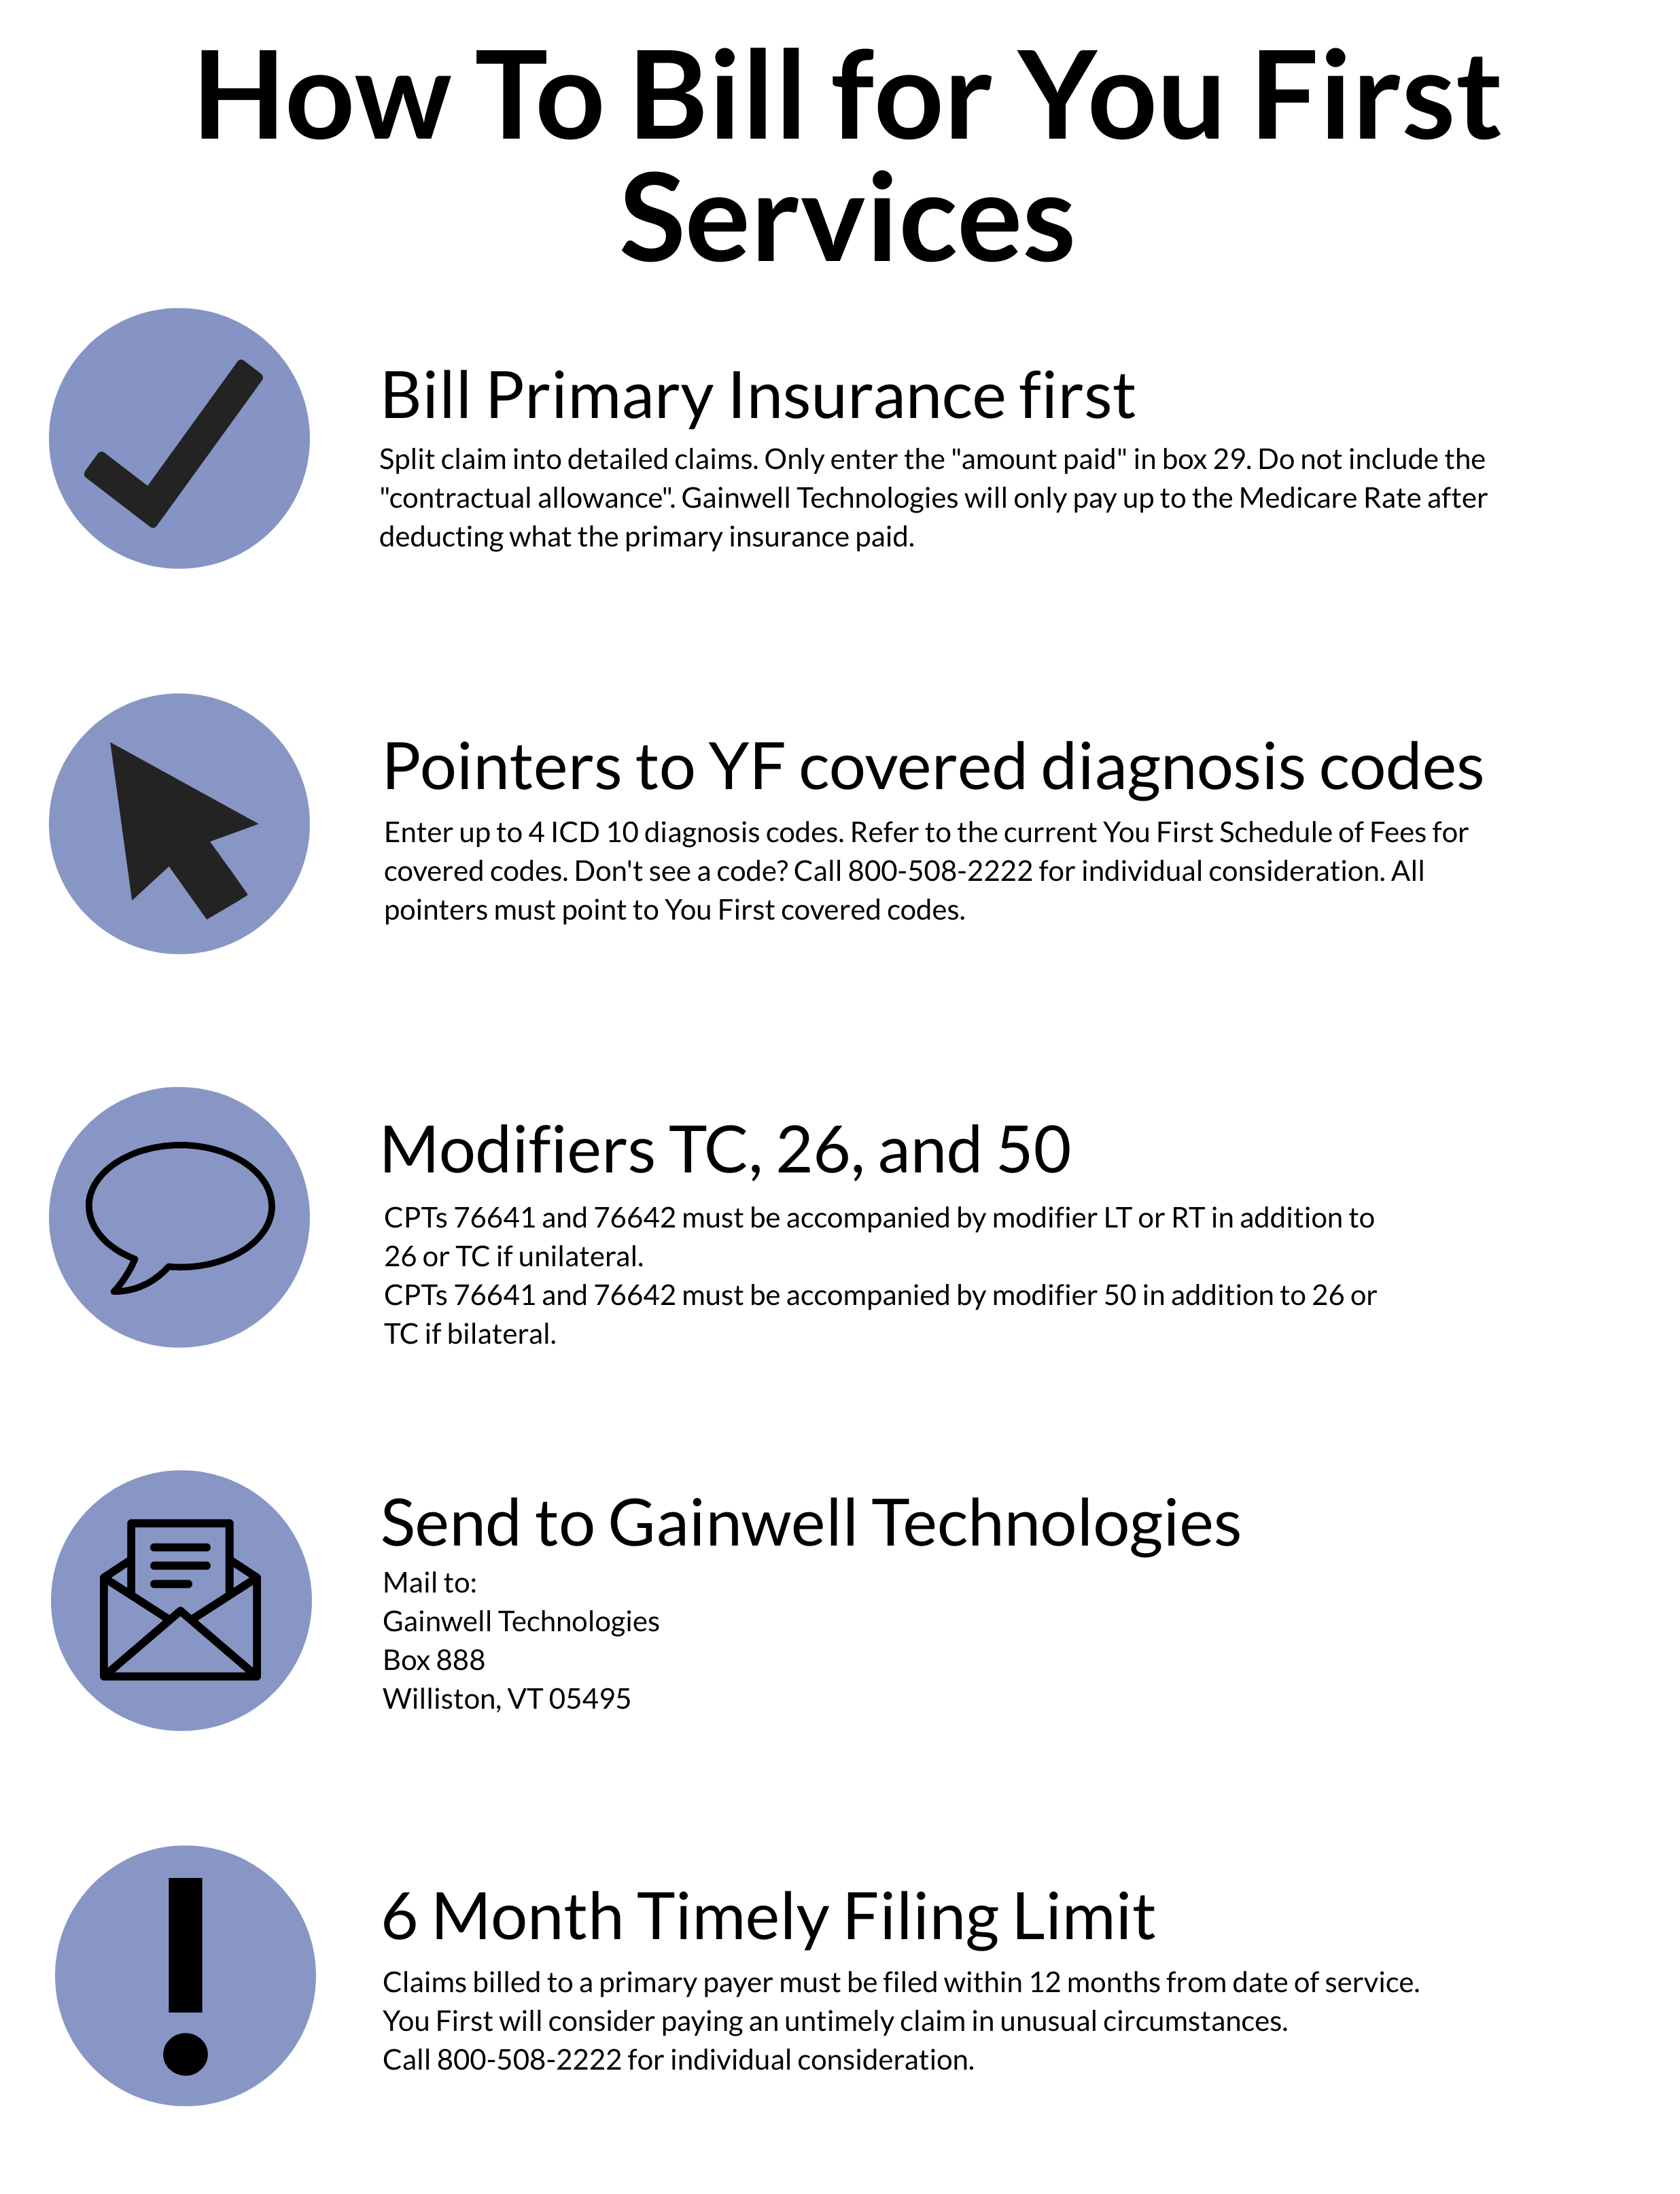 Steps for billing for You First services